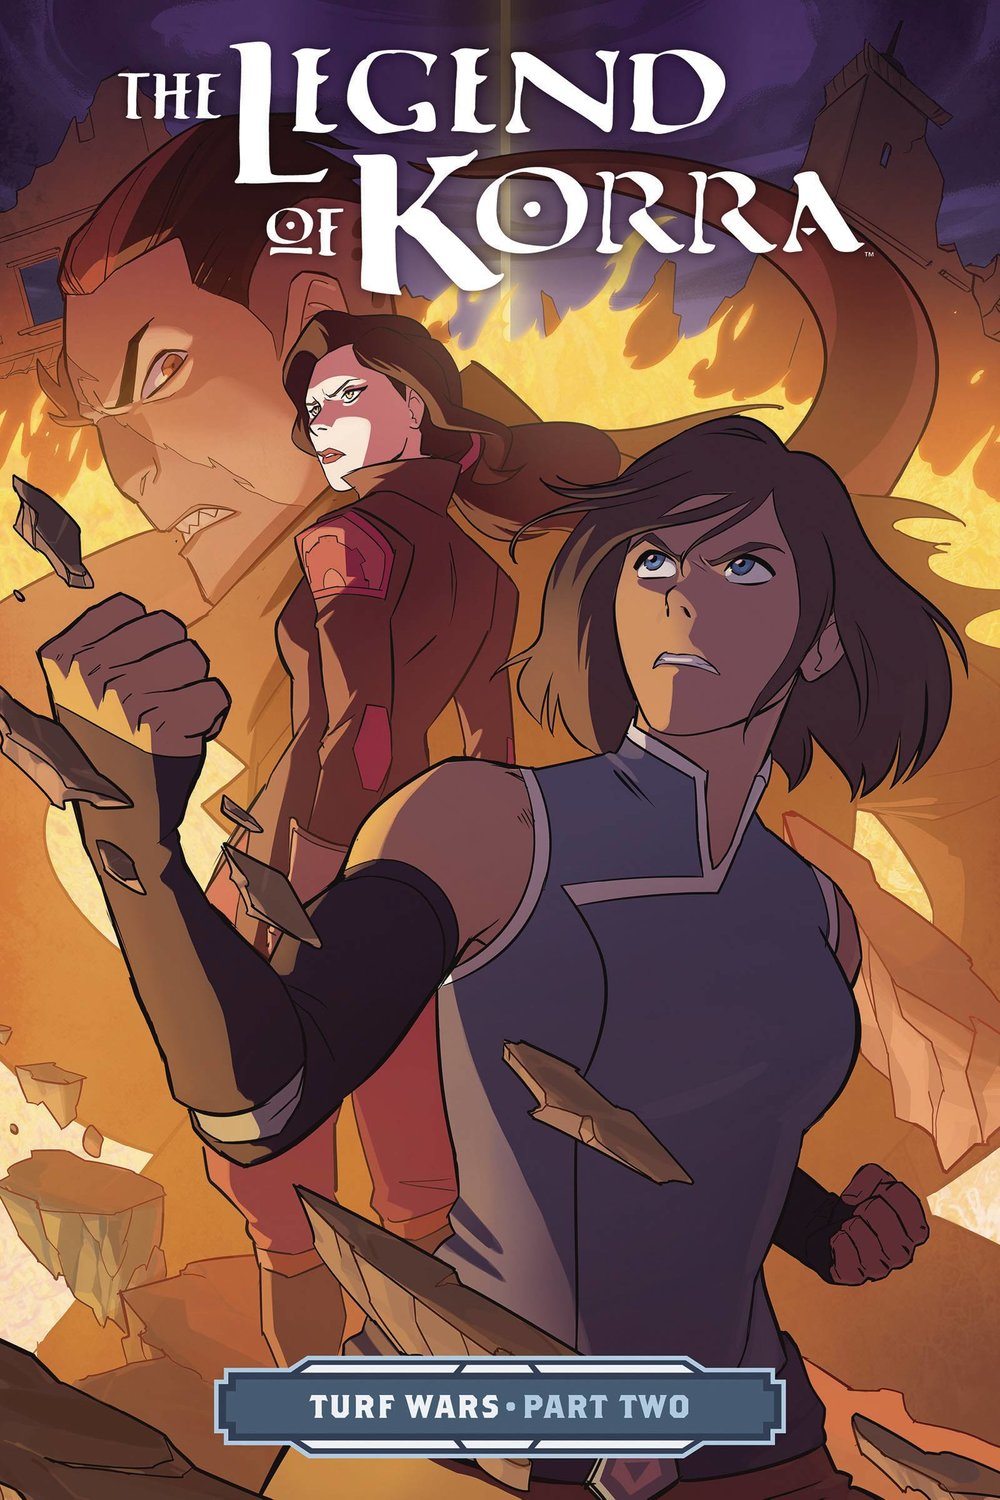 LEGEND OF KORRA TP 2 TURF WARS PT 2.jpg